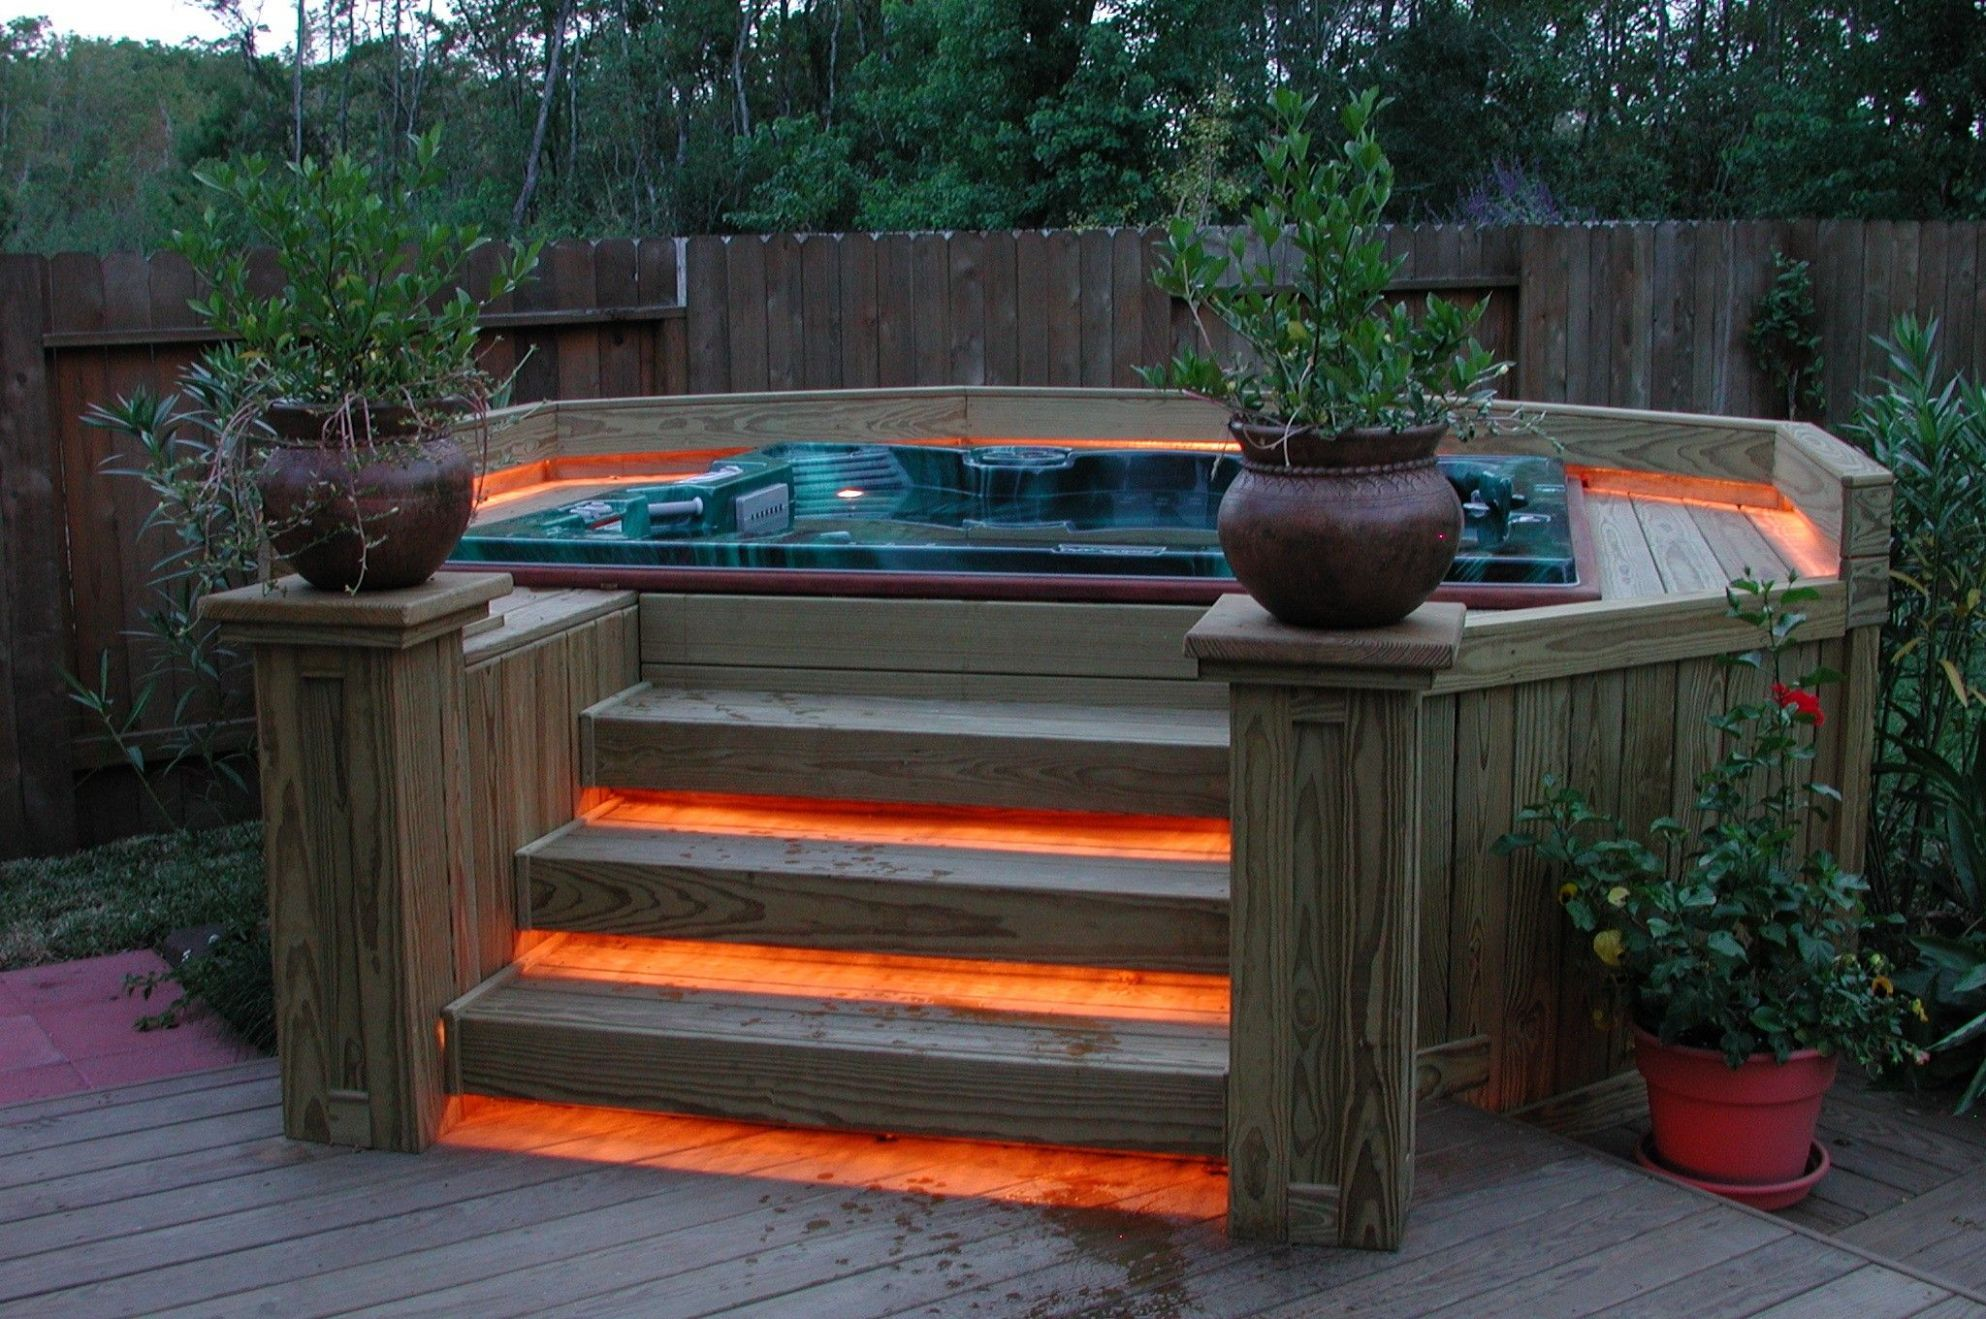 11 Irresistible hot tub spa designs for your backyard | Hot tub ..